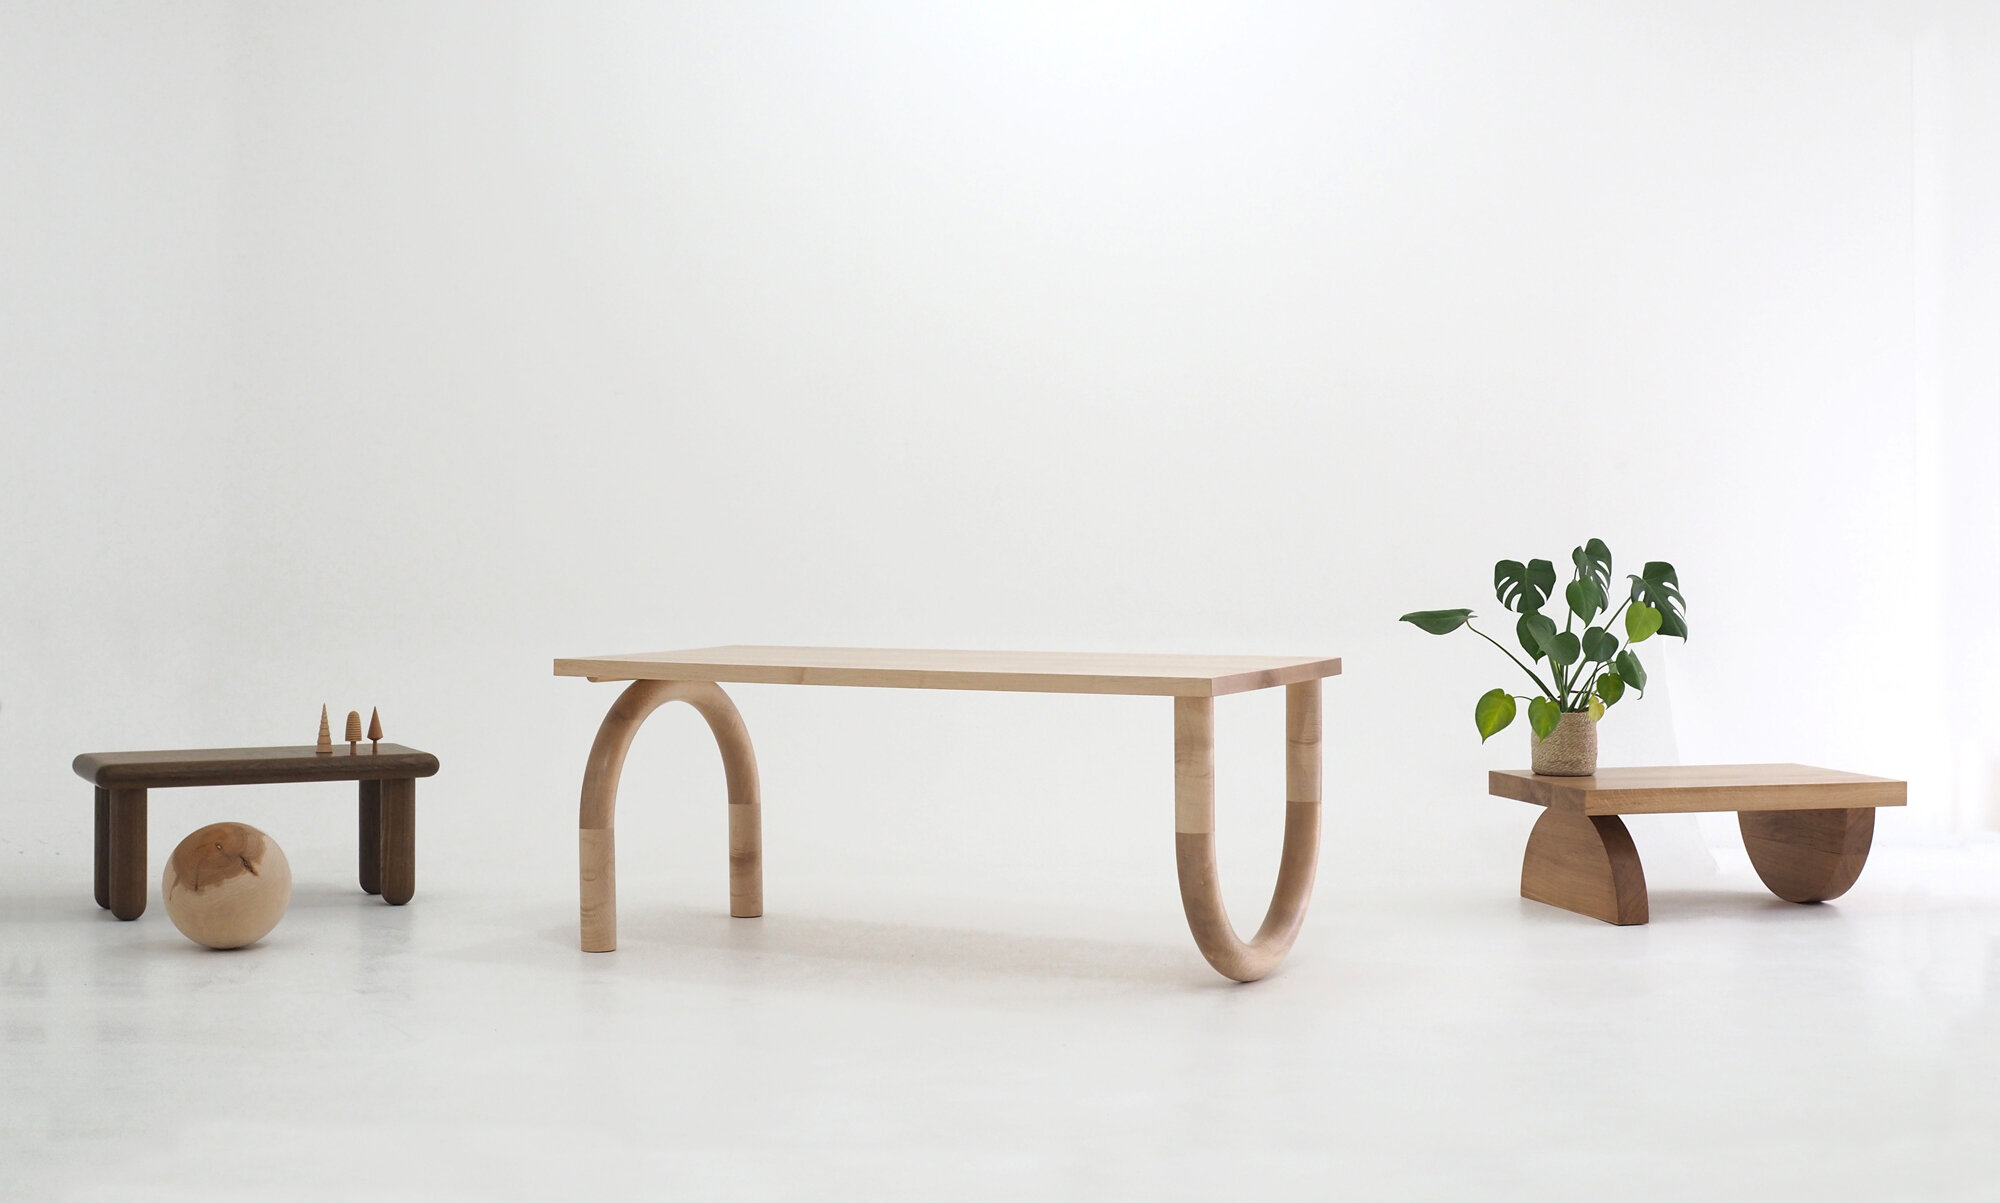 Having Second Thoughts About Getting Custom Timber Furniture? Here's What You Need to Know